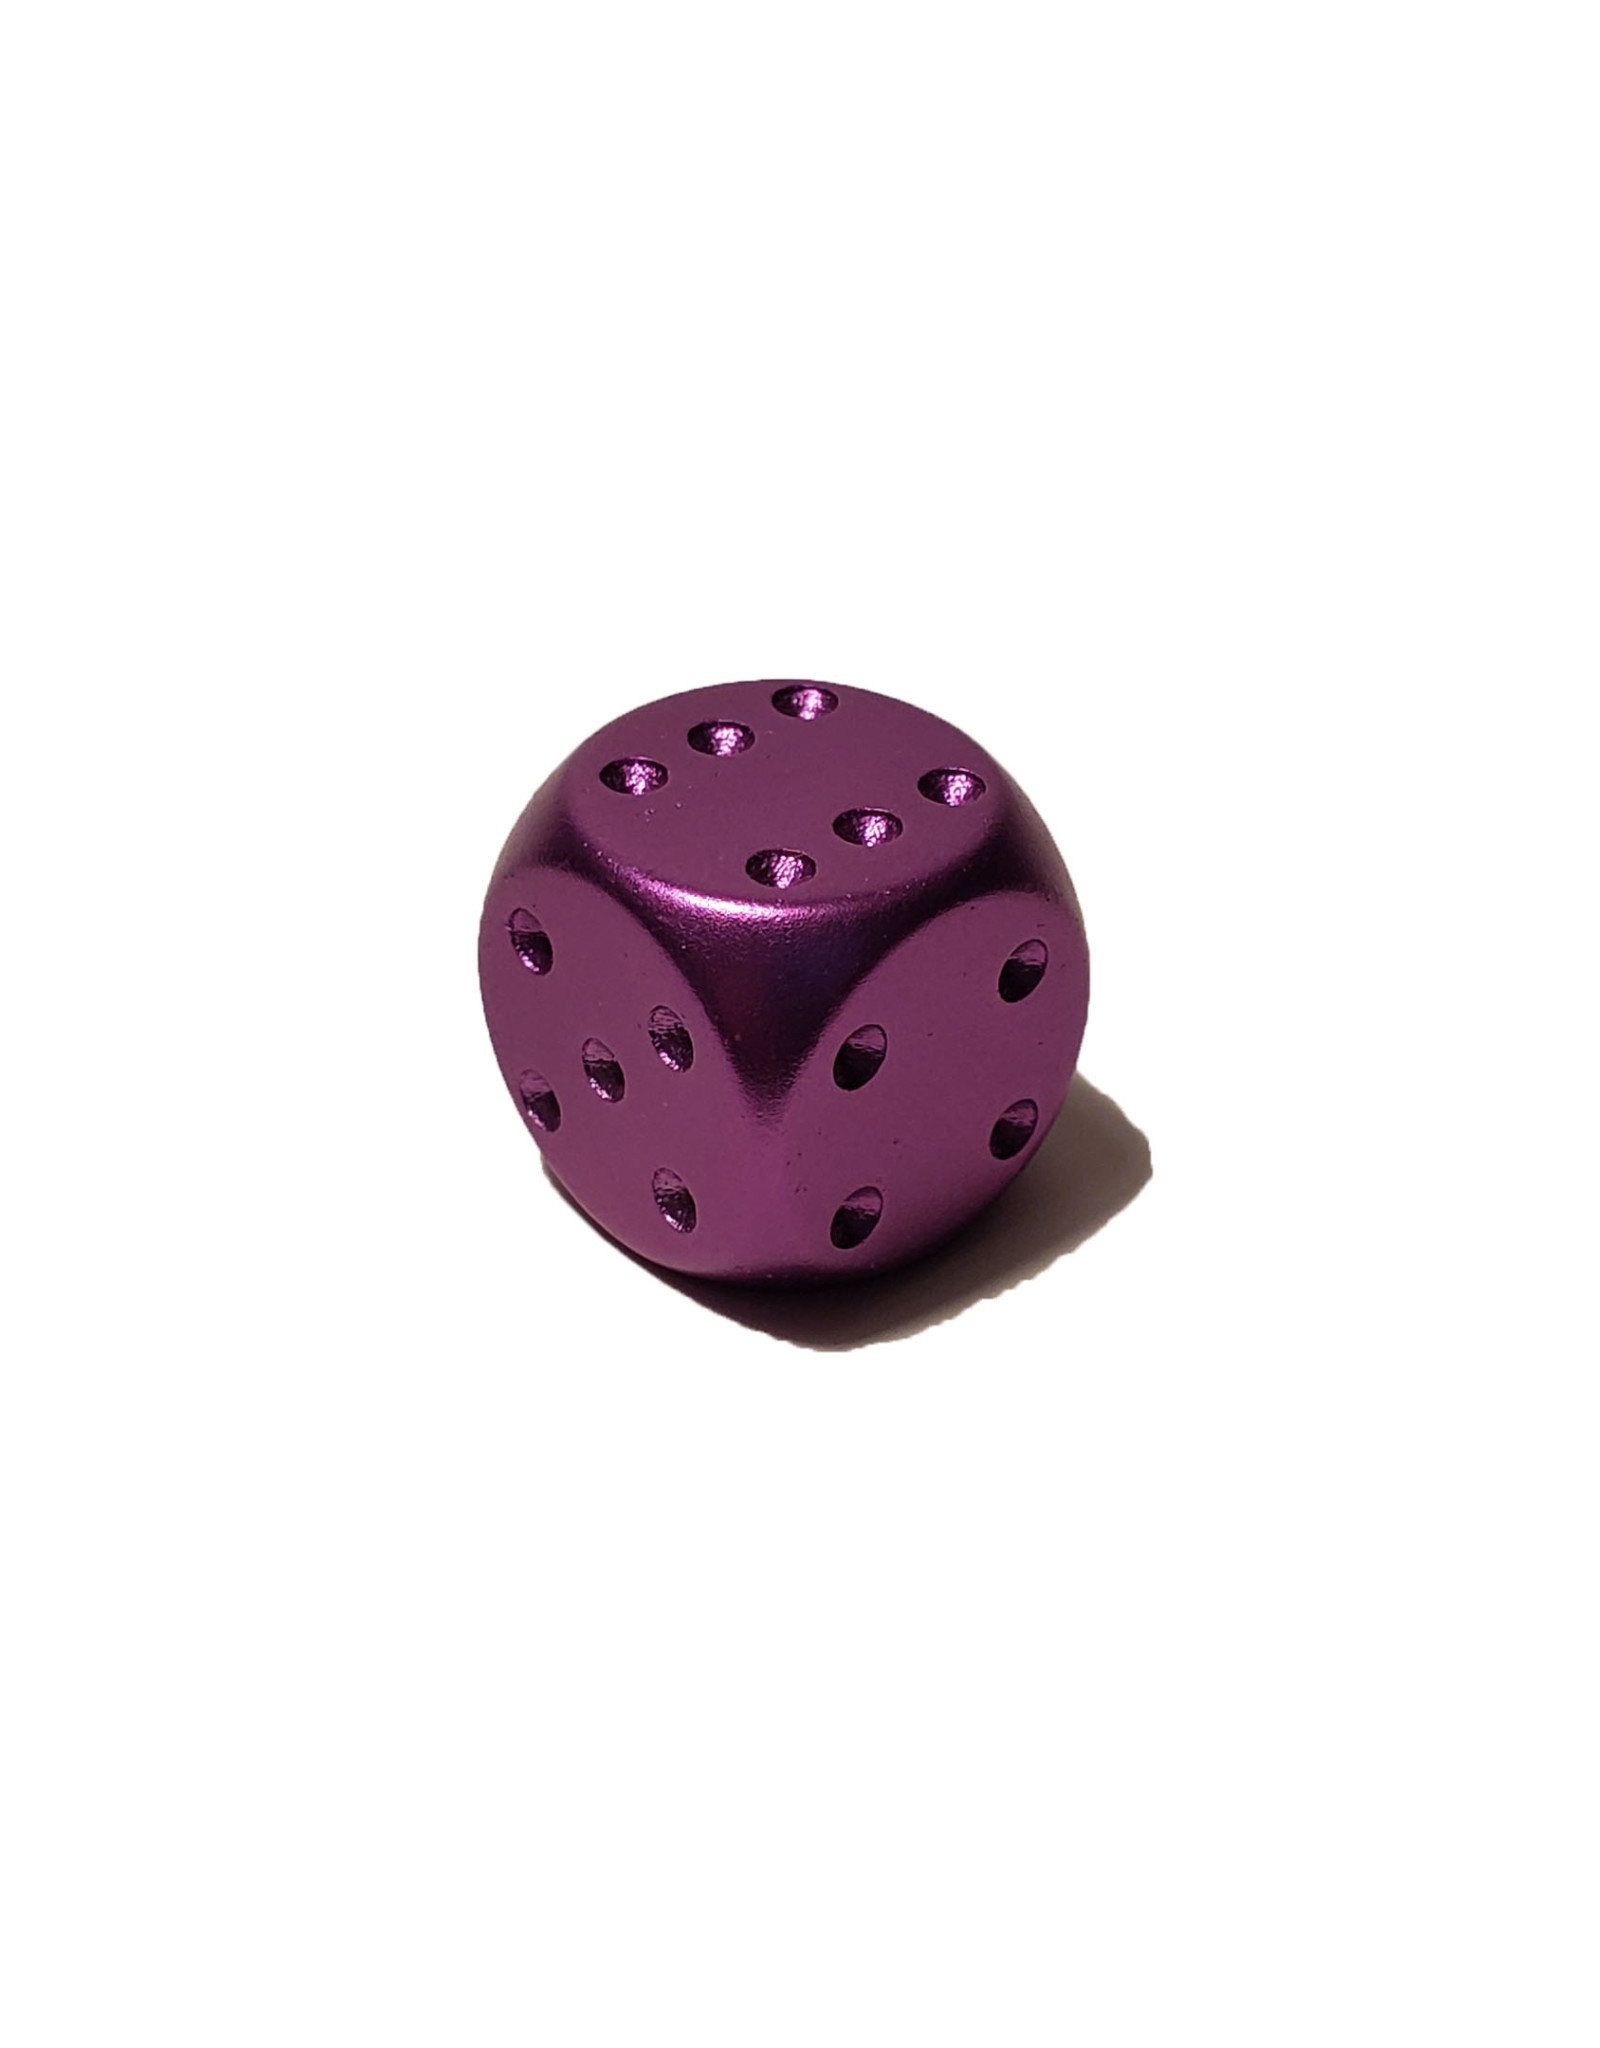 Pipped Aluminum D6 - Purple